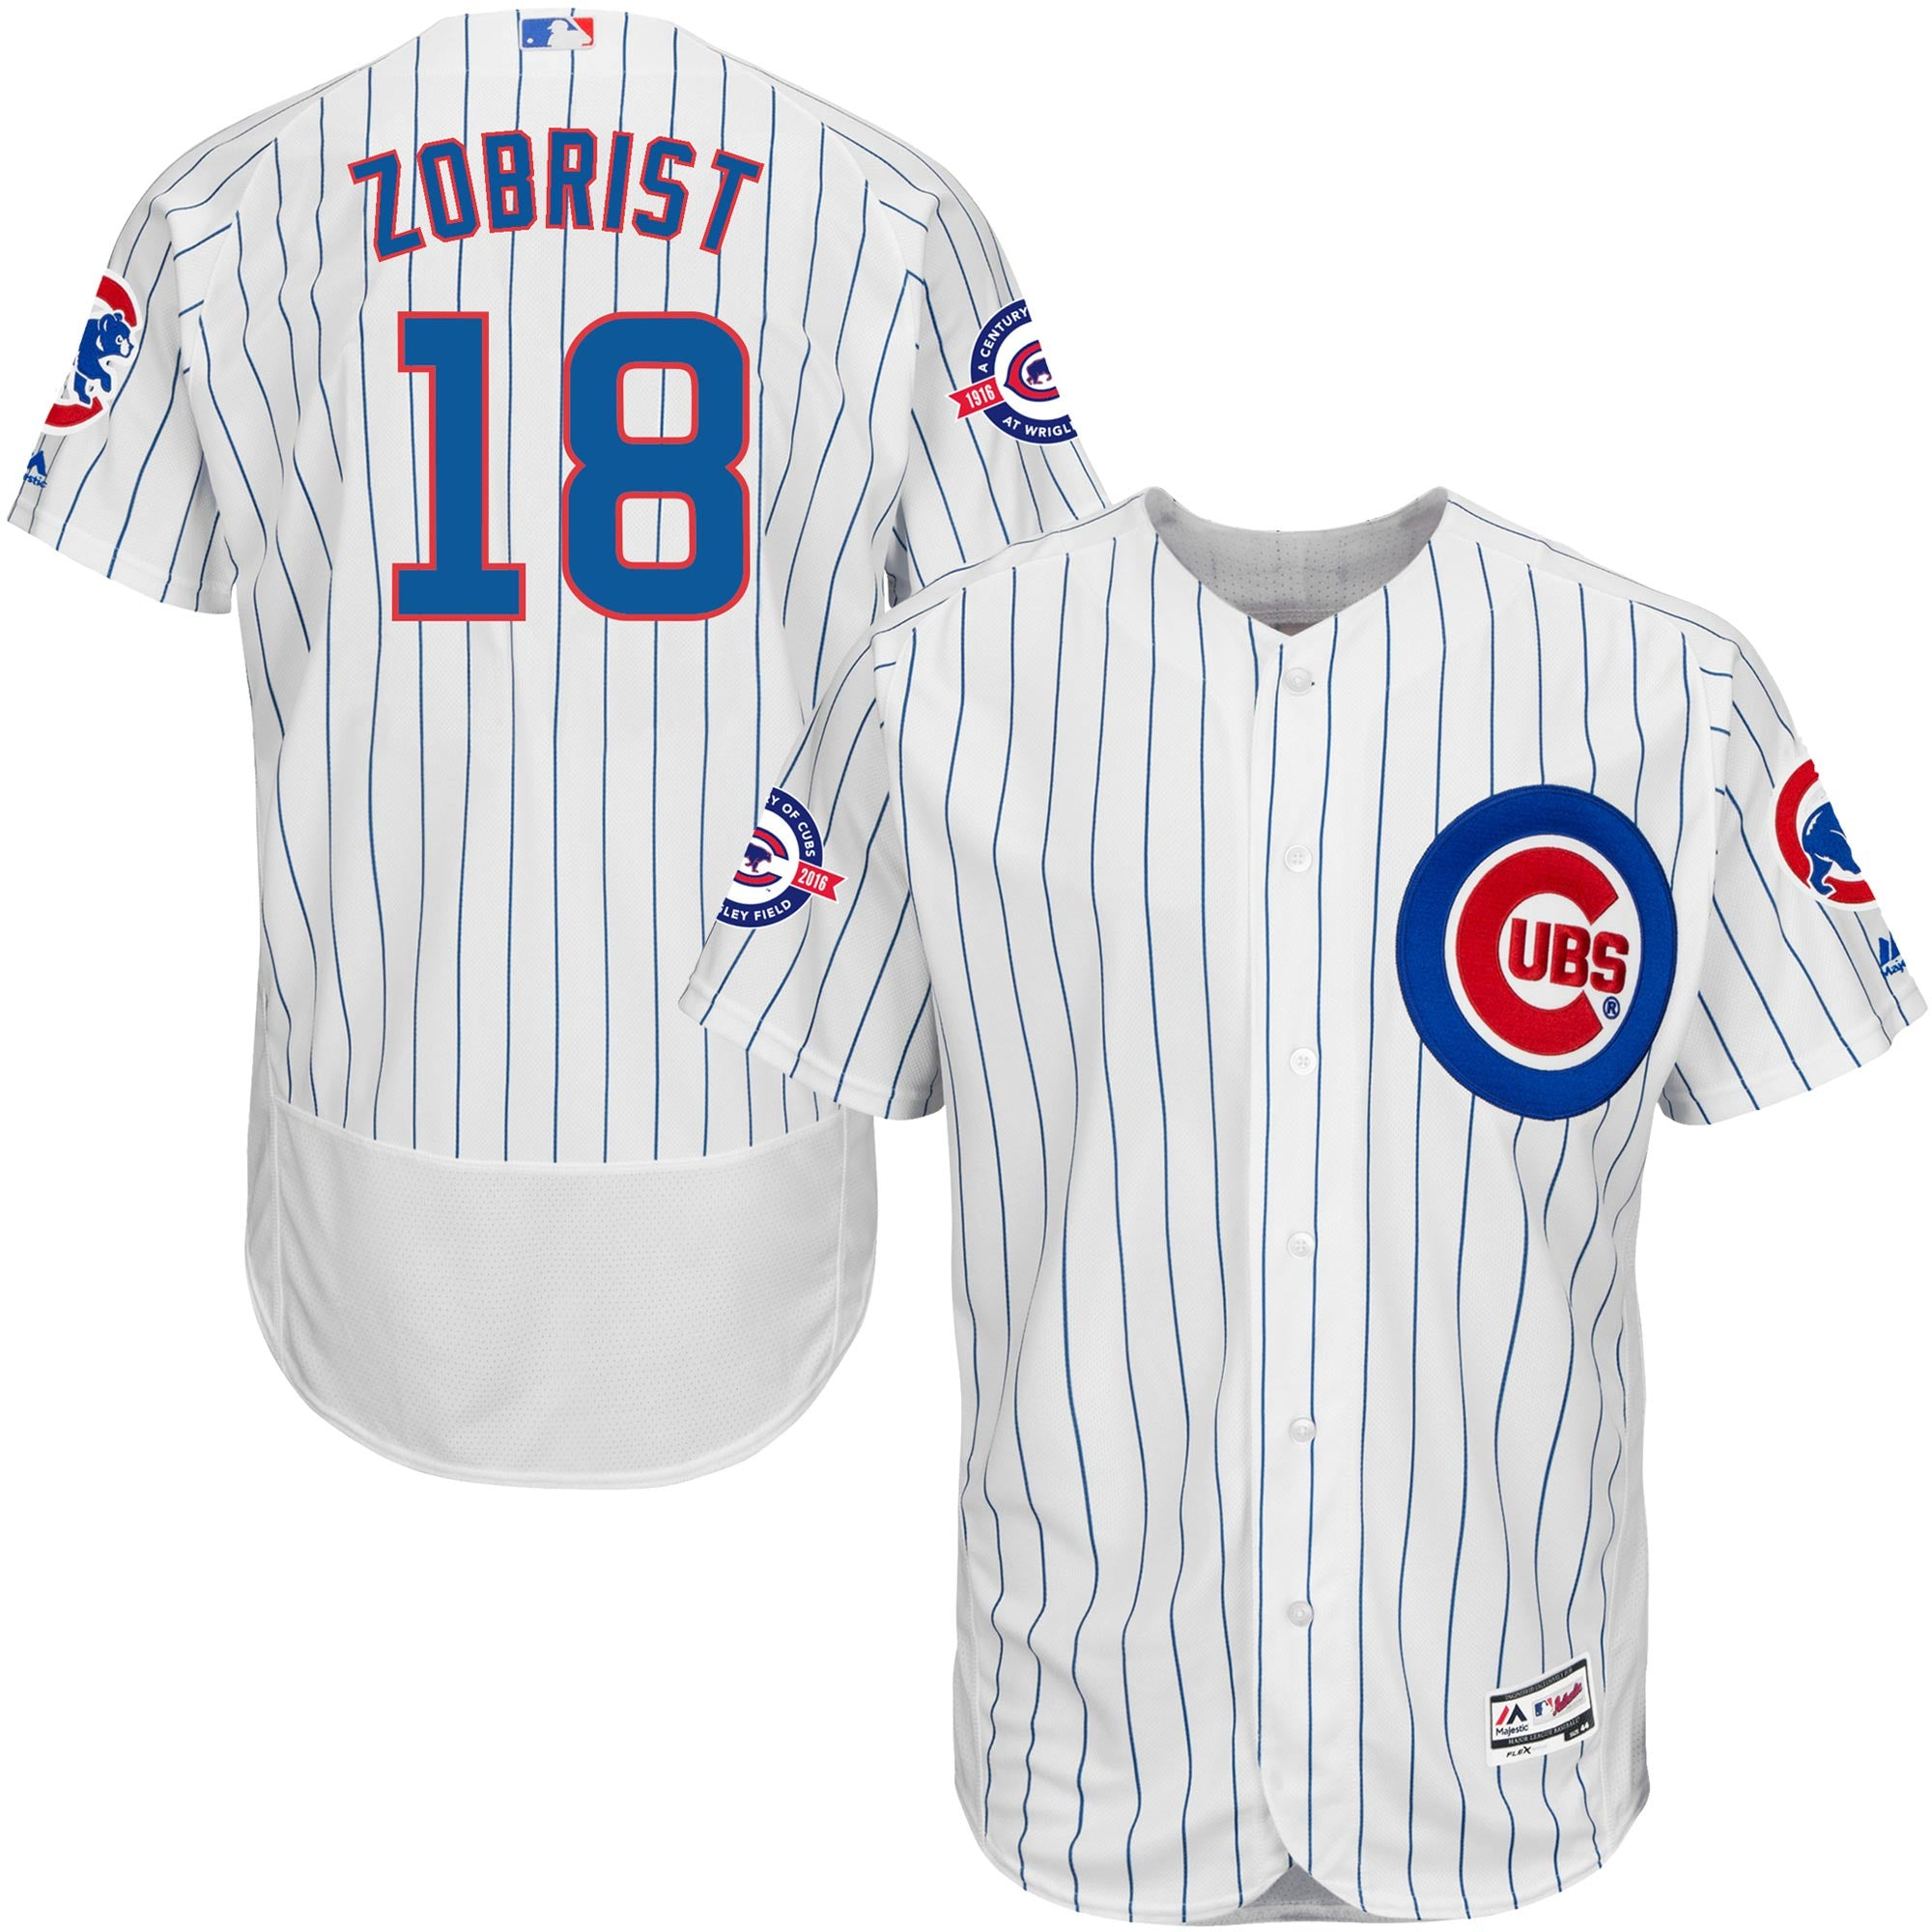 new concept 41b65 2c55b Chicago Cubs Ben Zobrist Majestic Home Flexbase Authentic Jersey with 100  Years at Wrigley Field Commemorative Patch